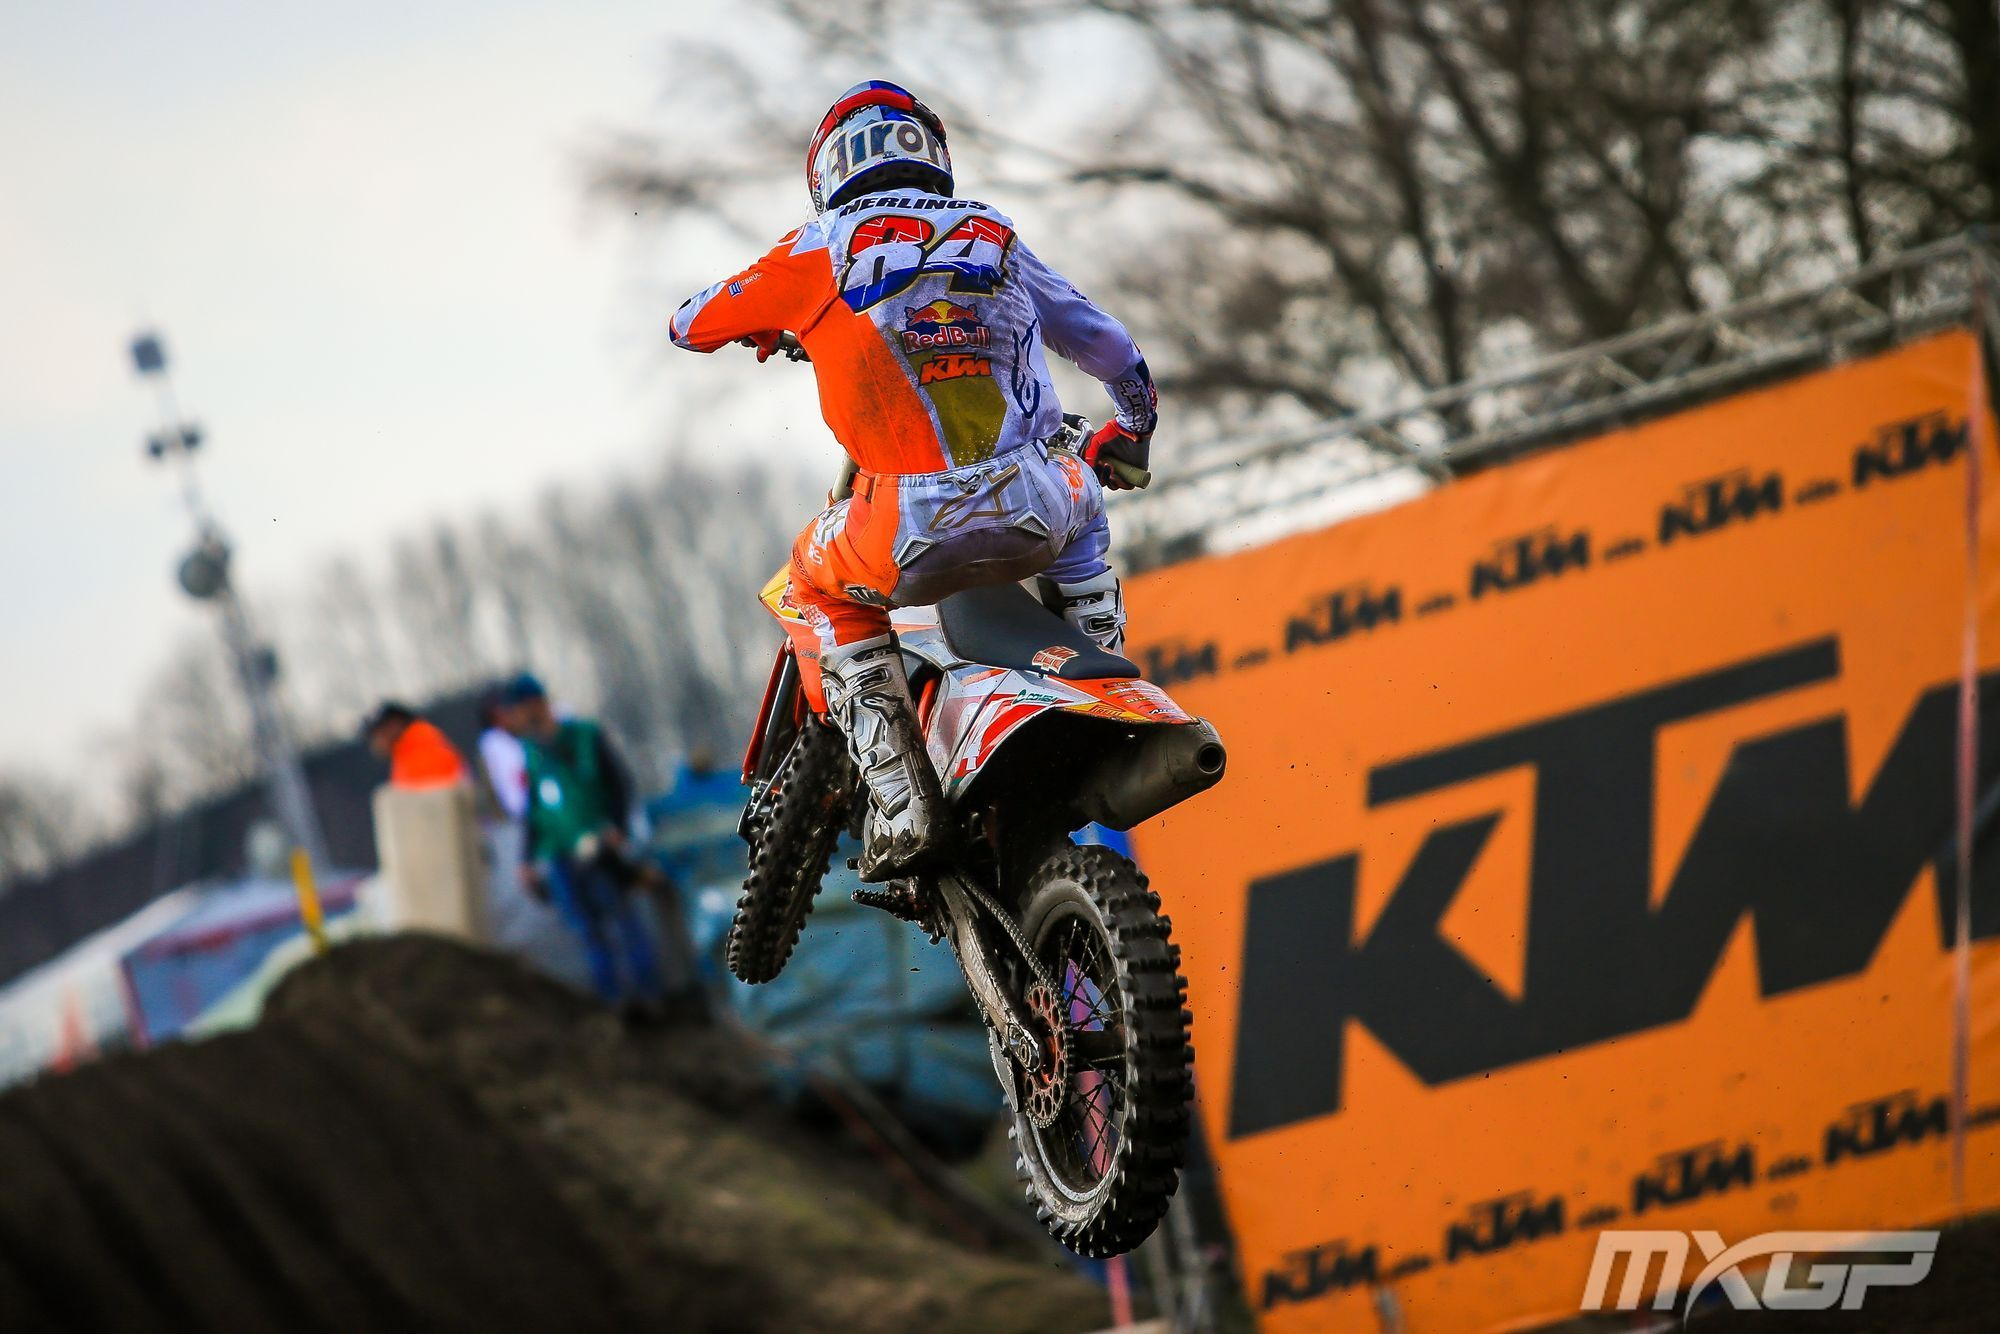 HERLINGS-VI-MOTOCROSS-GP-2-NL-2020.jpg#asset:27511